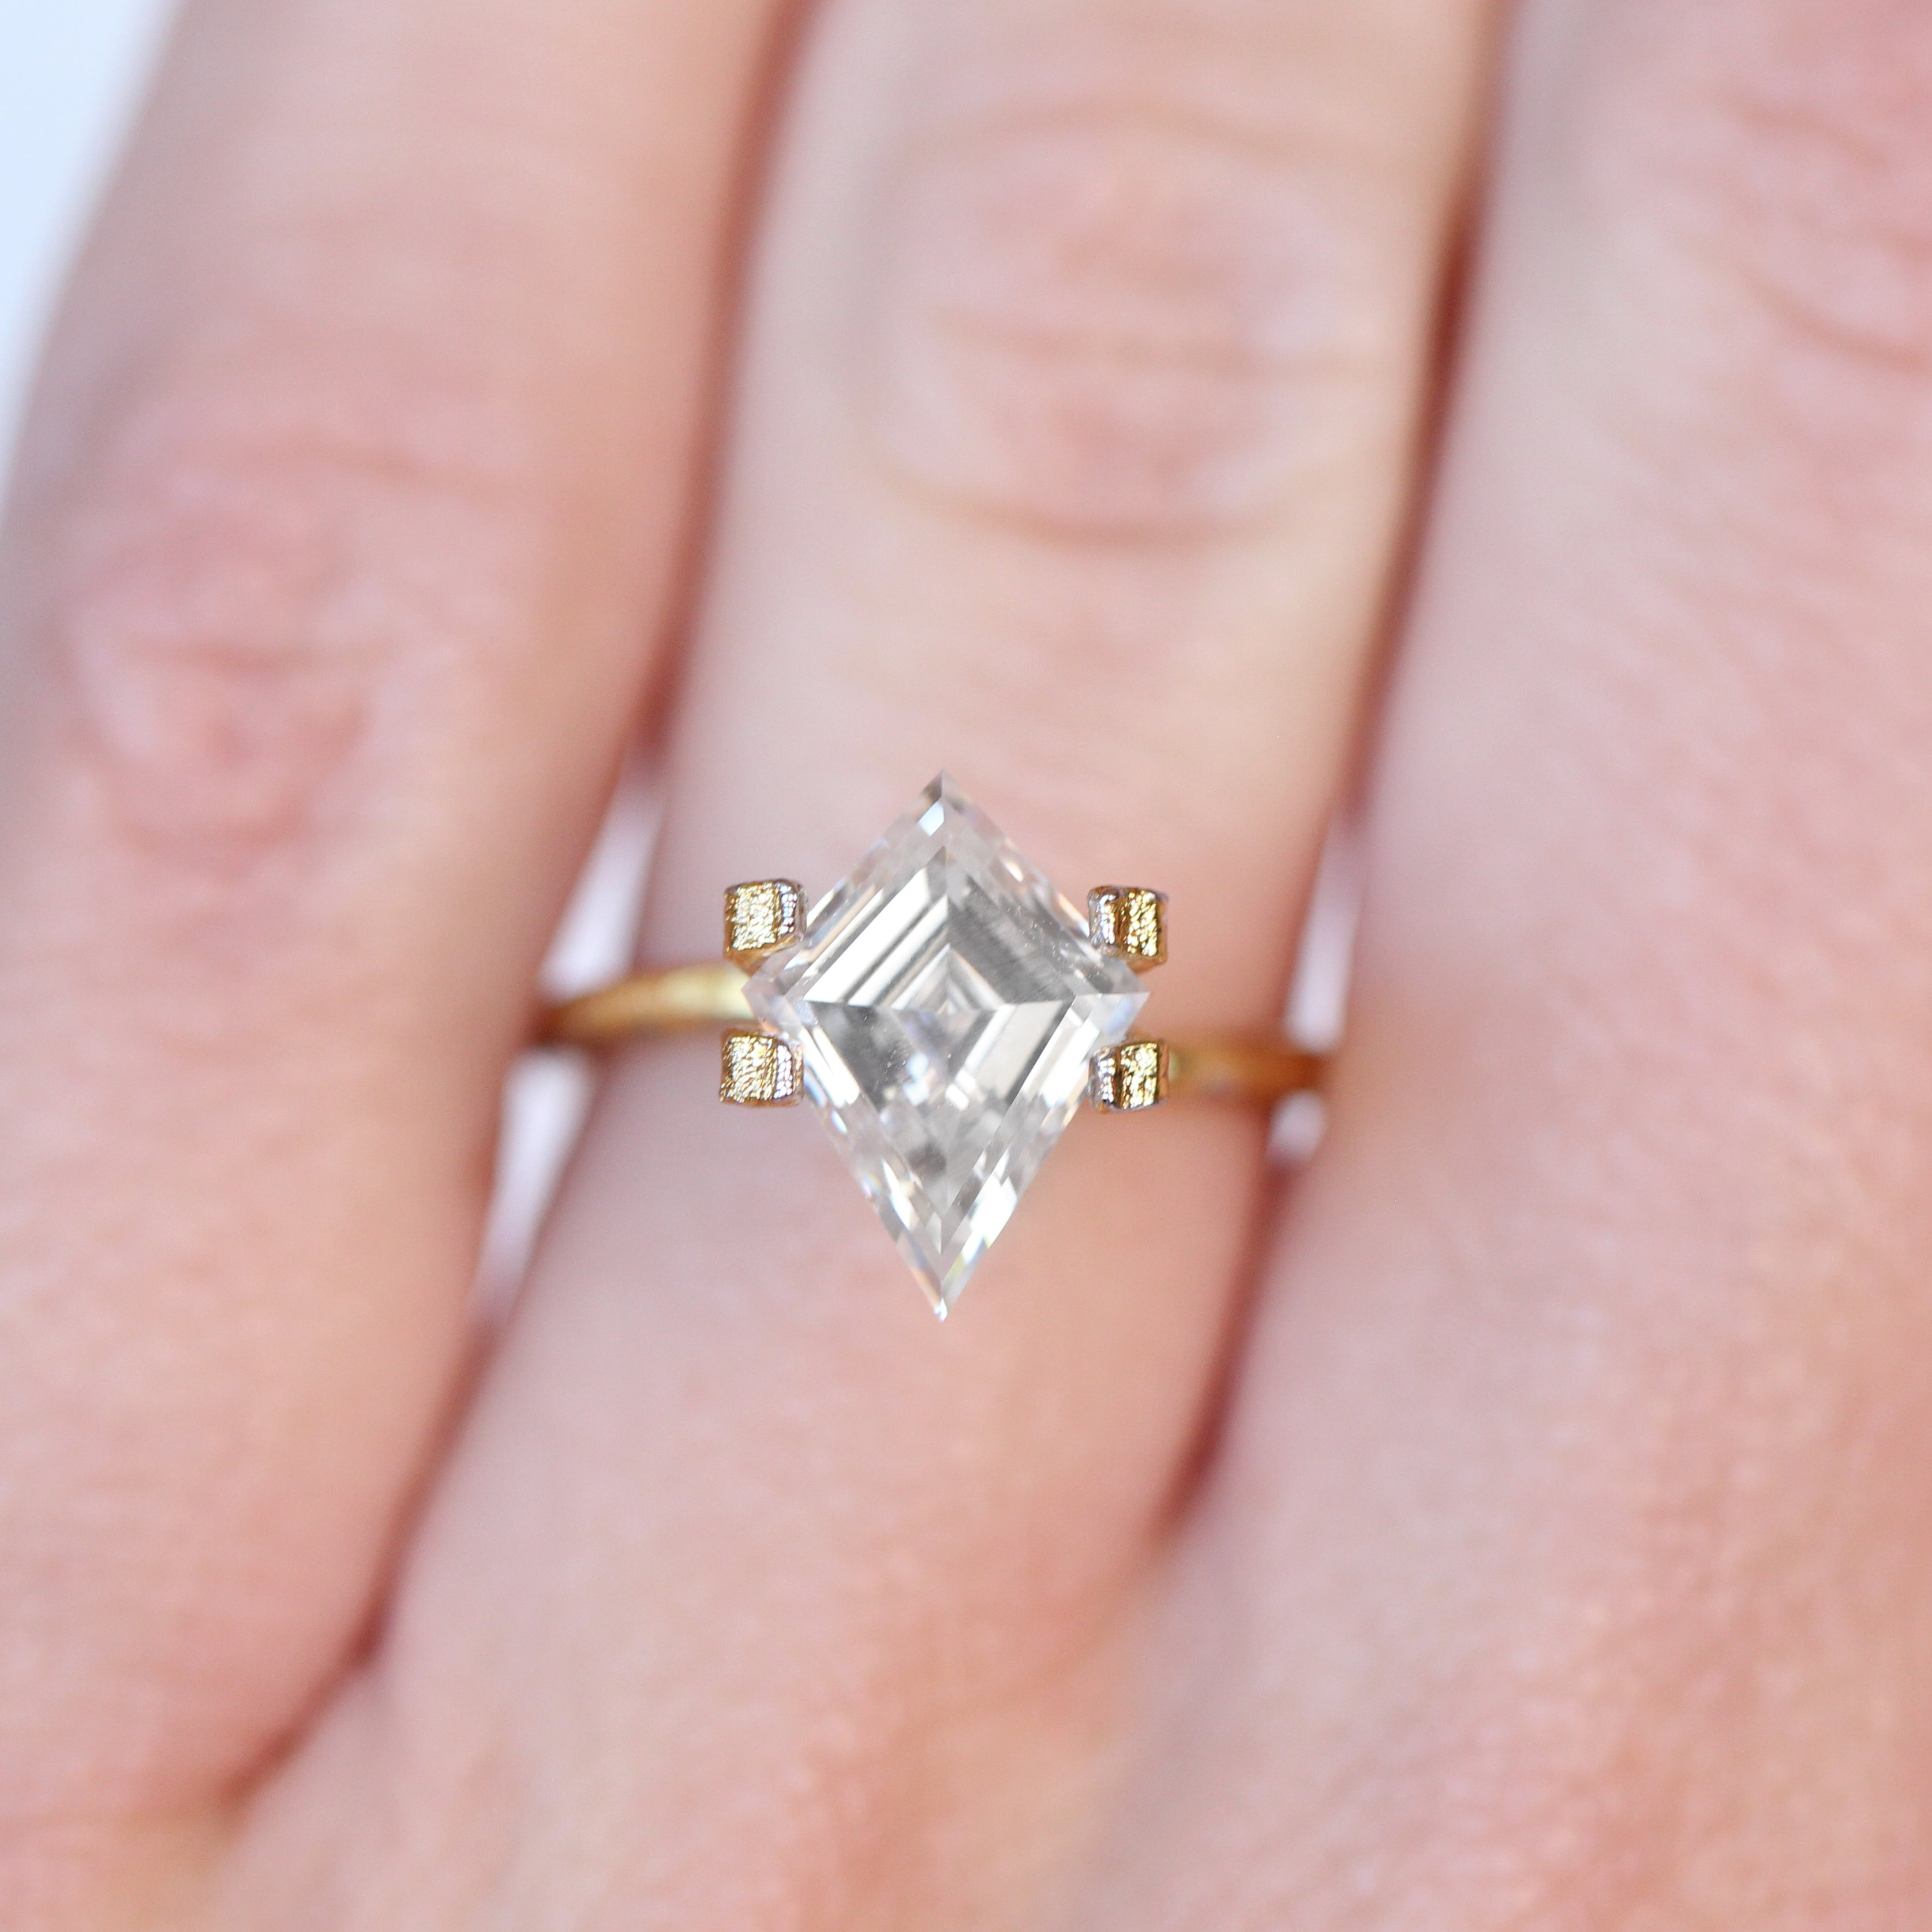 2.34 Carat Kite Moissanite- Inventory Code KBMOI234 - Celestial Diamonds ® by Midwinter Co.